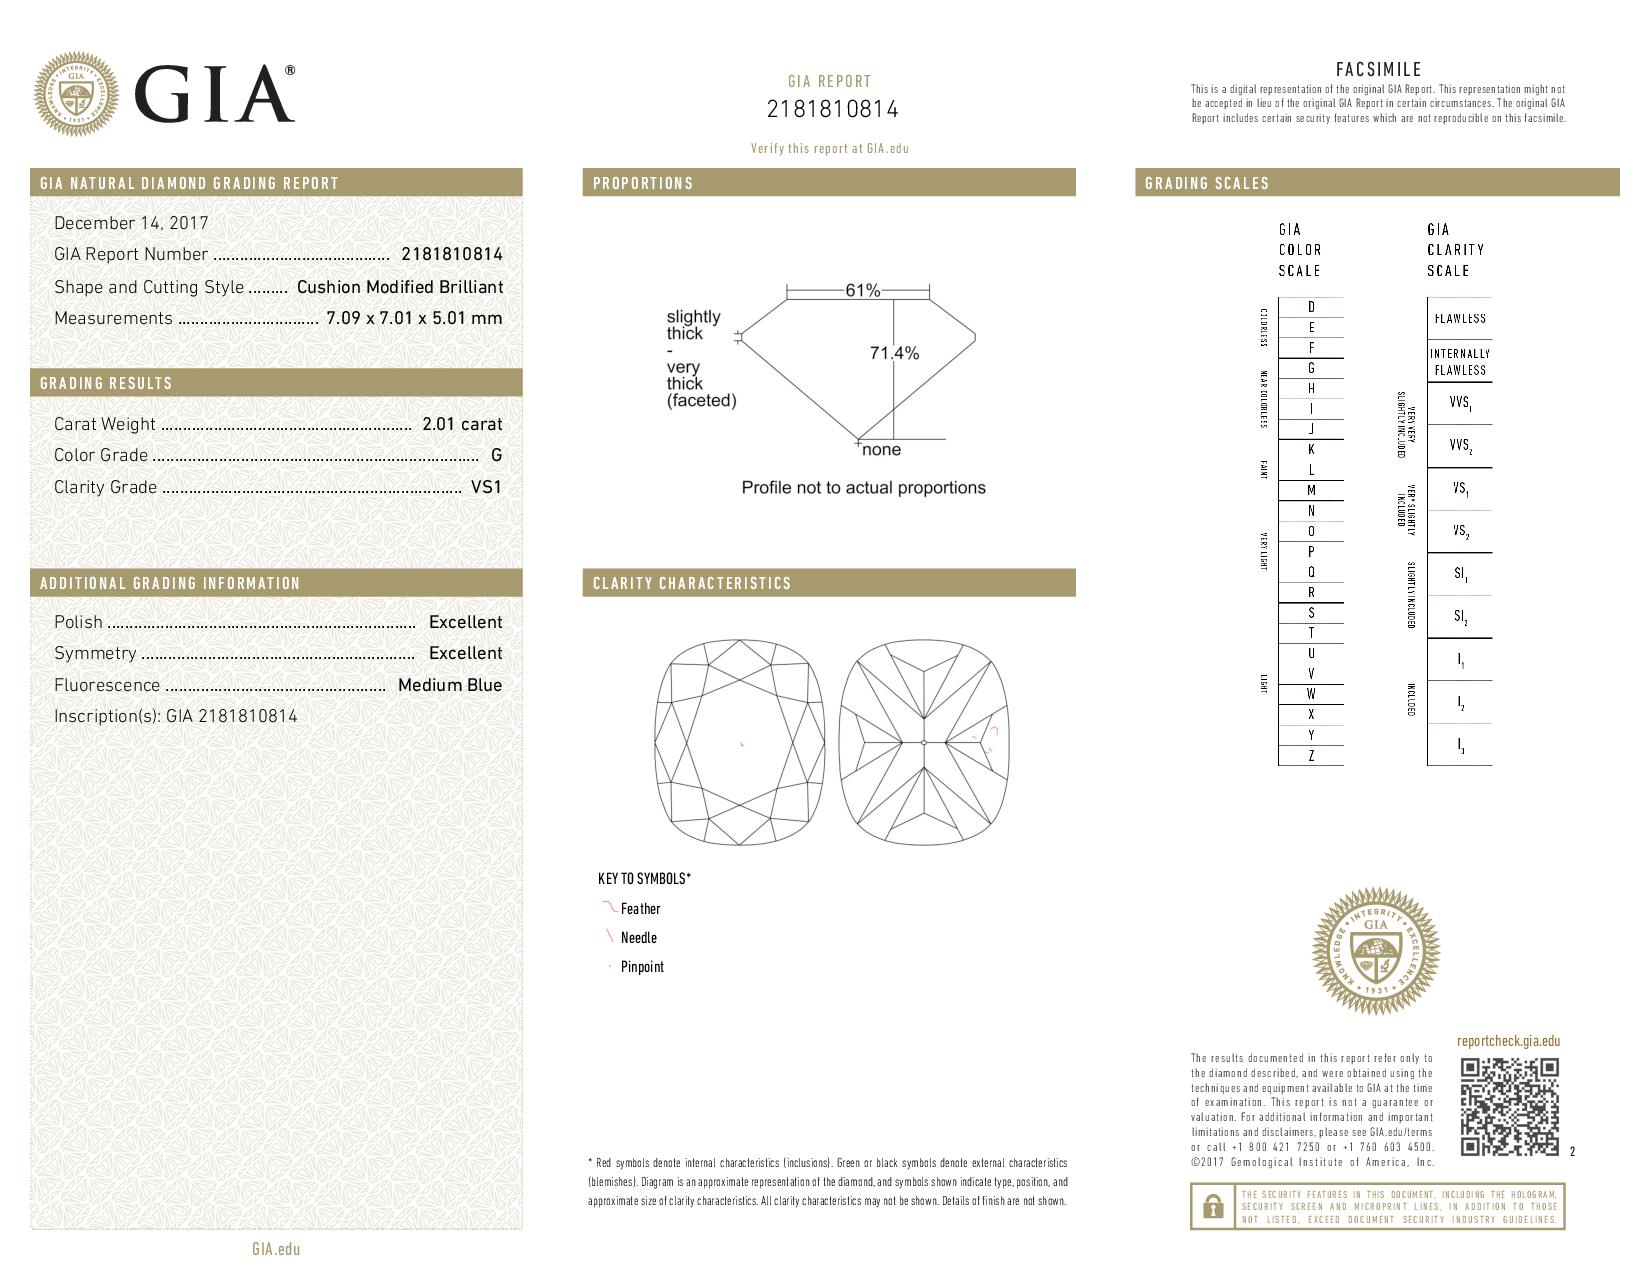 This is a 2.01 carat cushion shape, G color, VS1 clarity natural diamond accompanied by a GIA grading report.